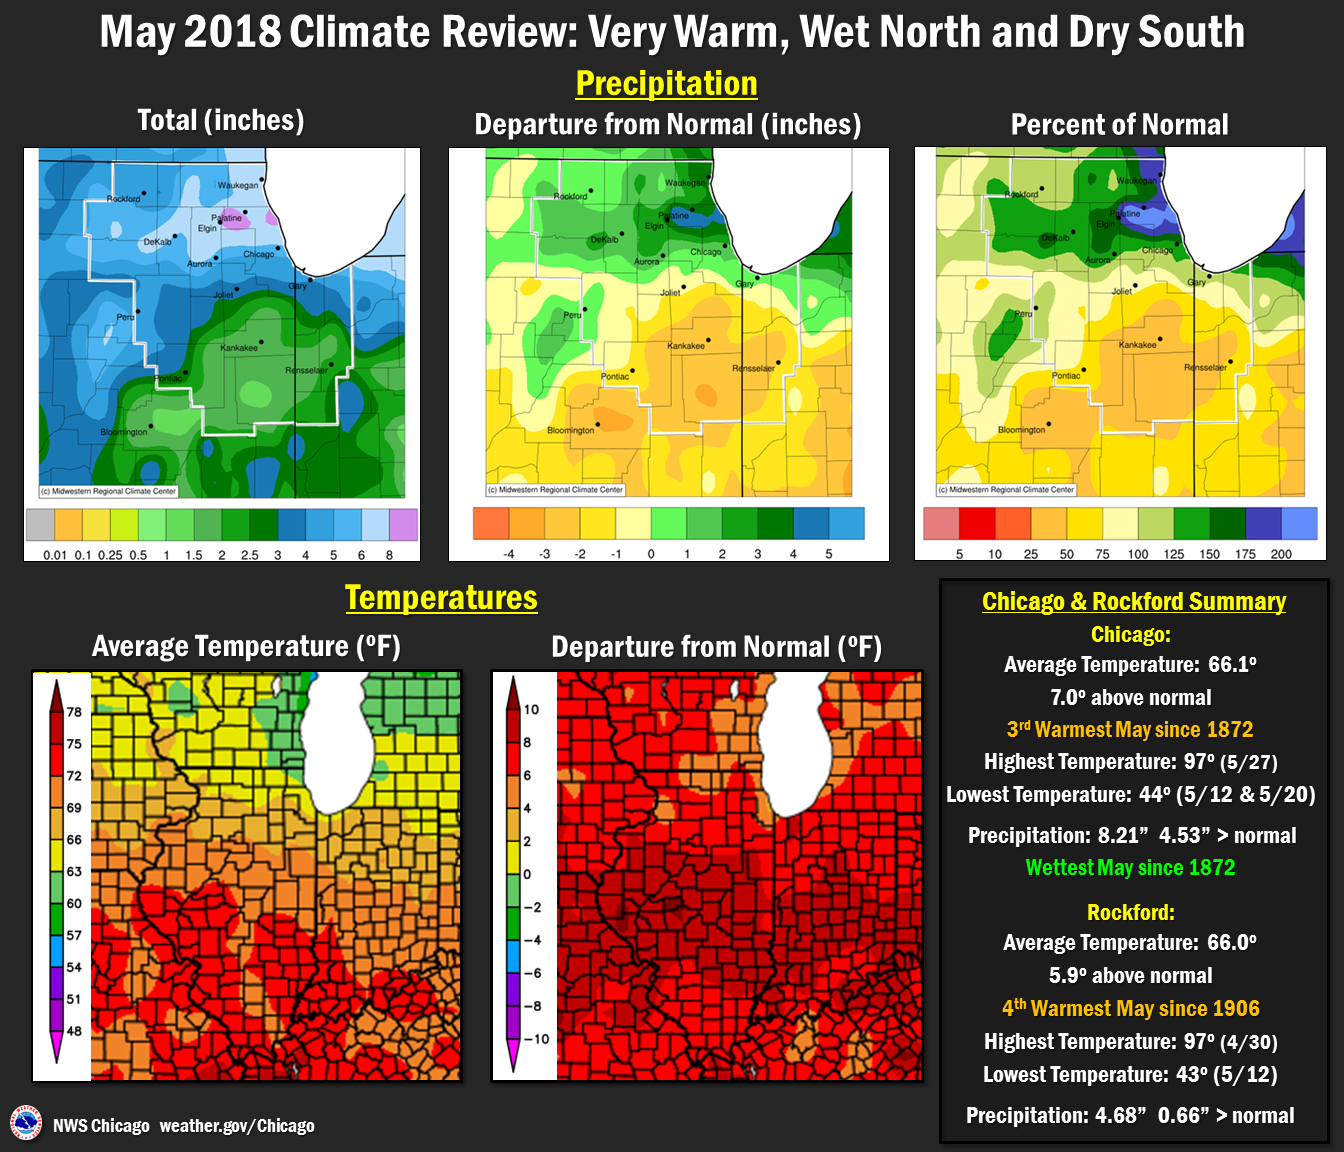 May 2018 Precipitation and Temperatures Overview